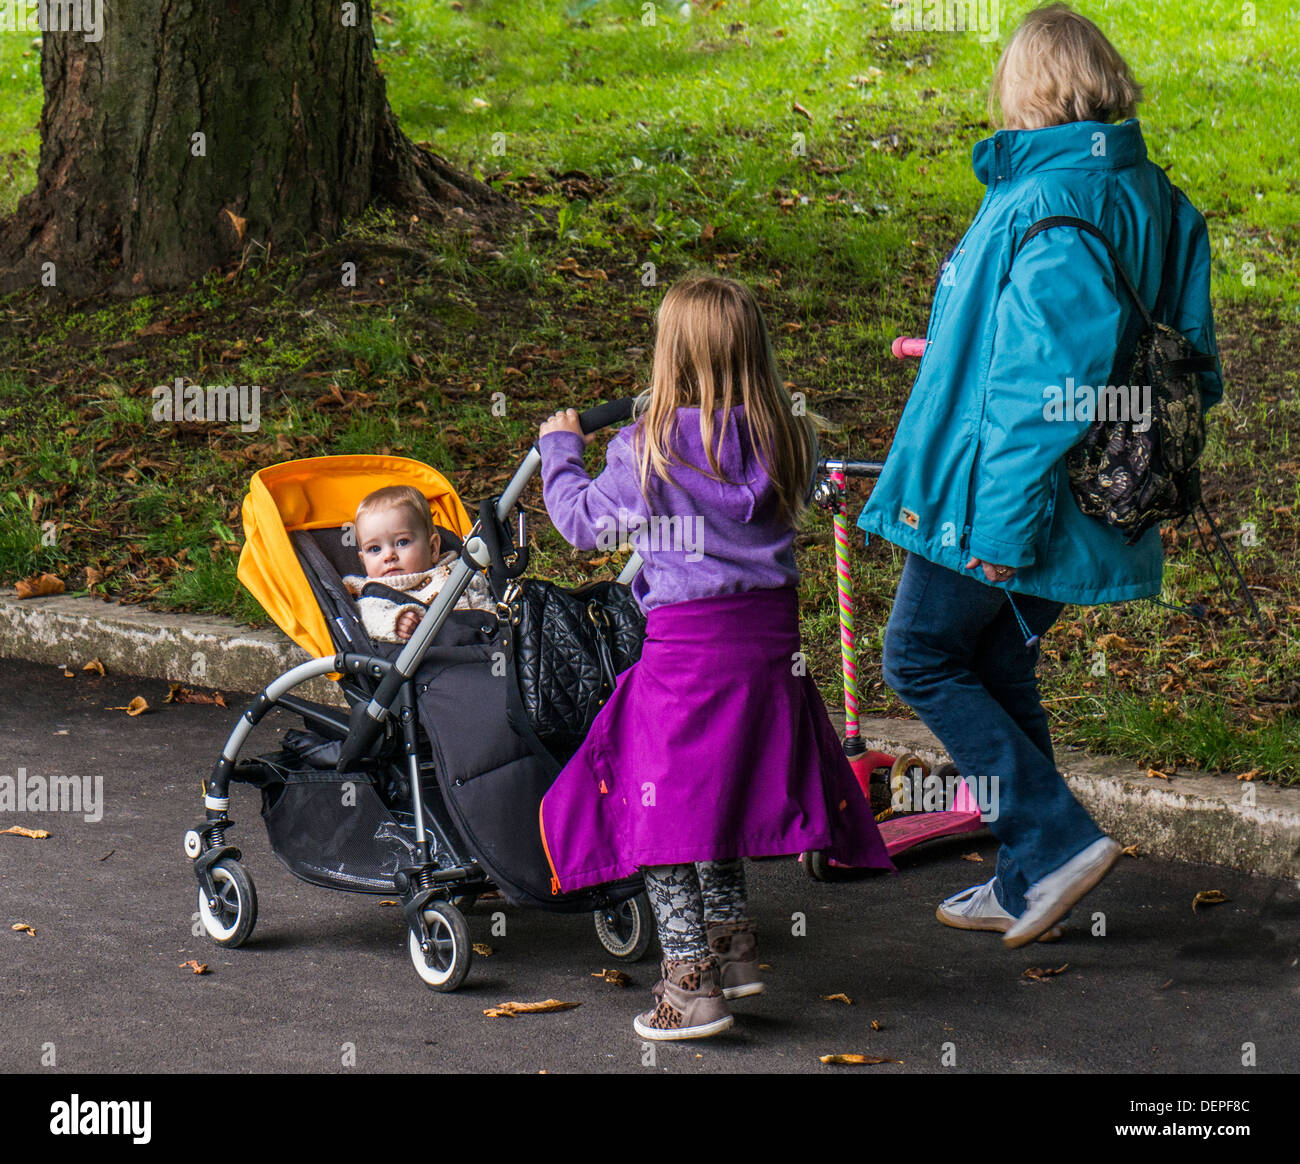 A family walking in the park, with a young child in buggy staring into the camera, Crystal Palace park, London England. - Stock Image